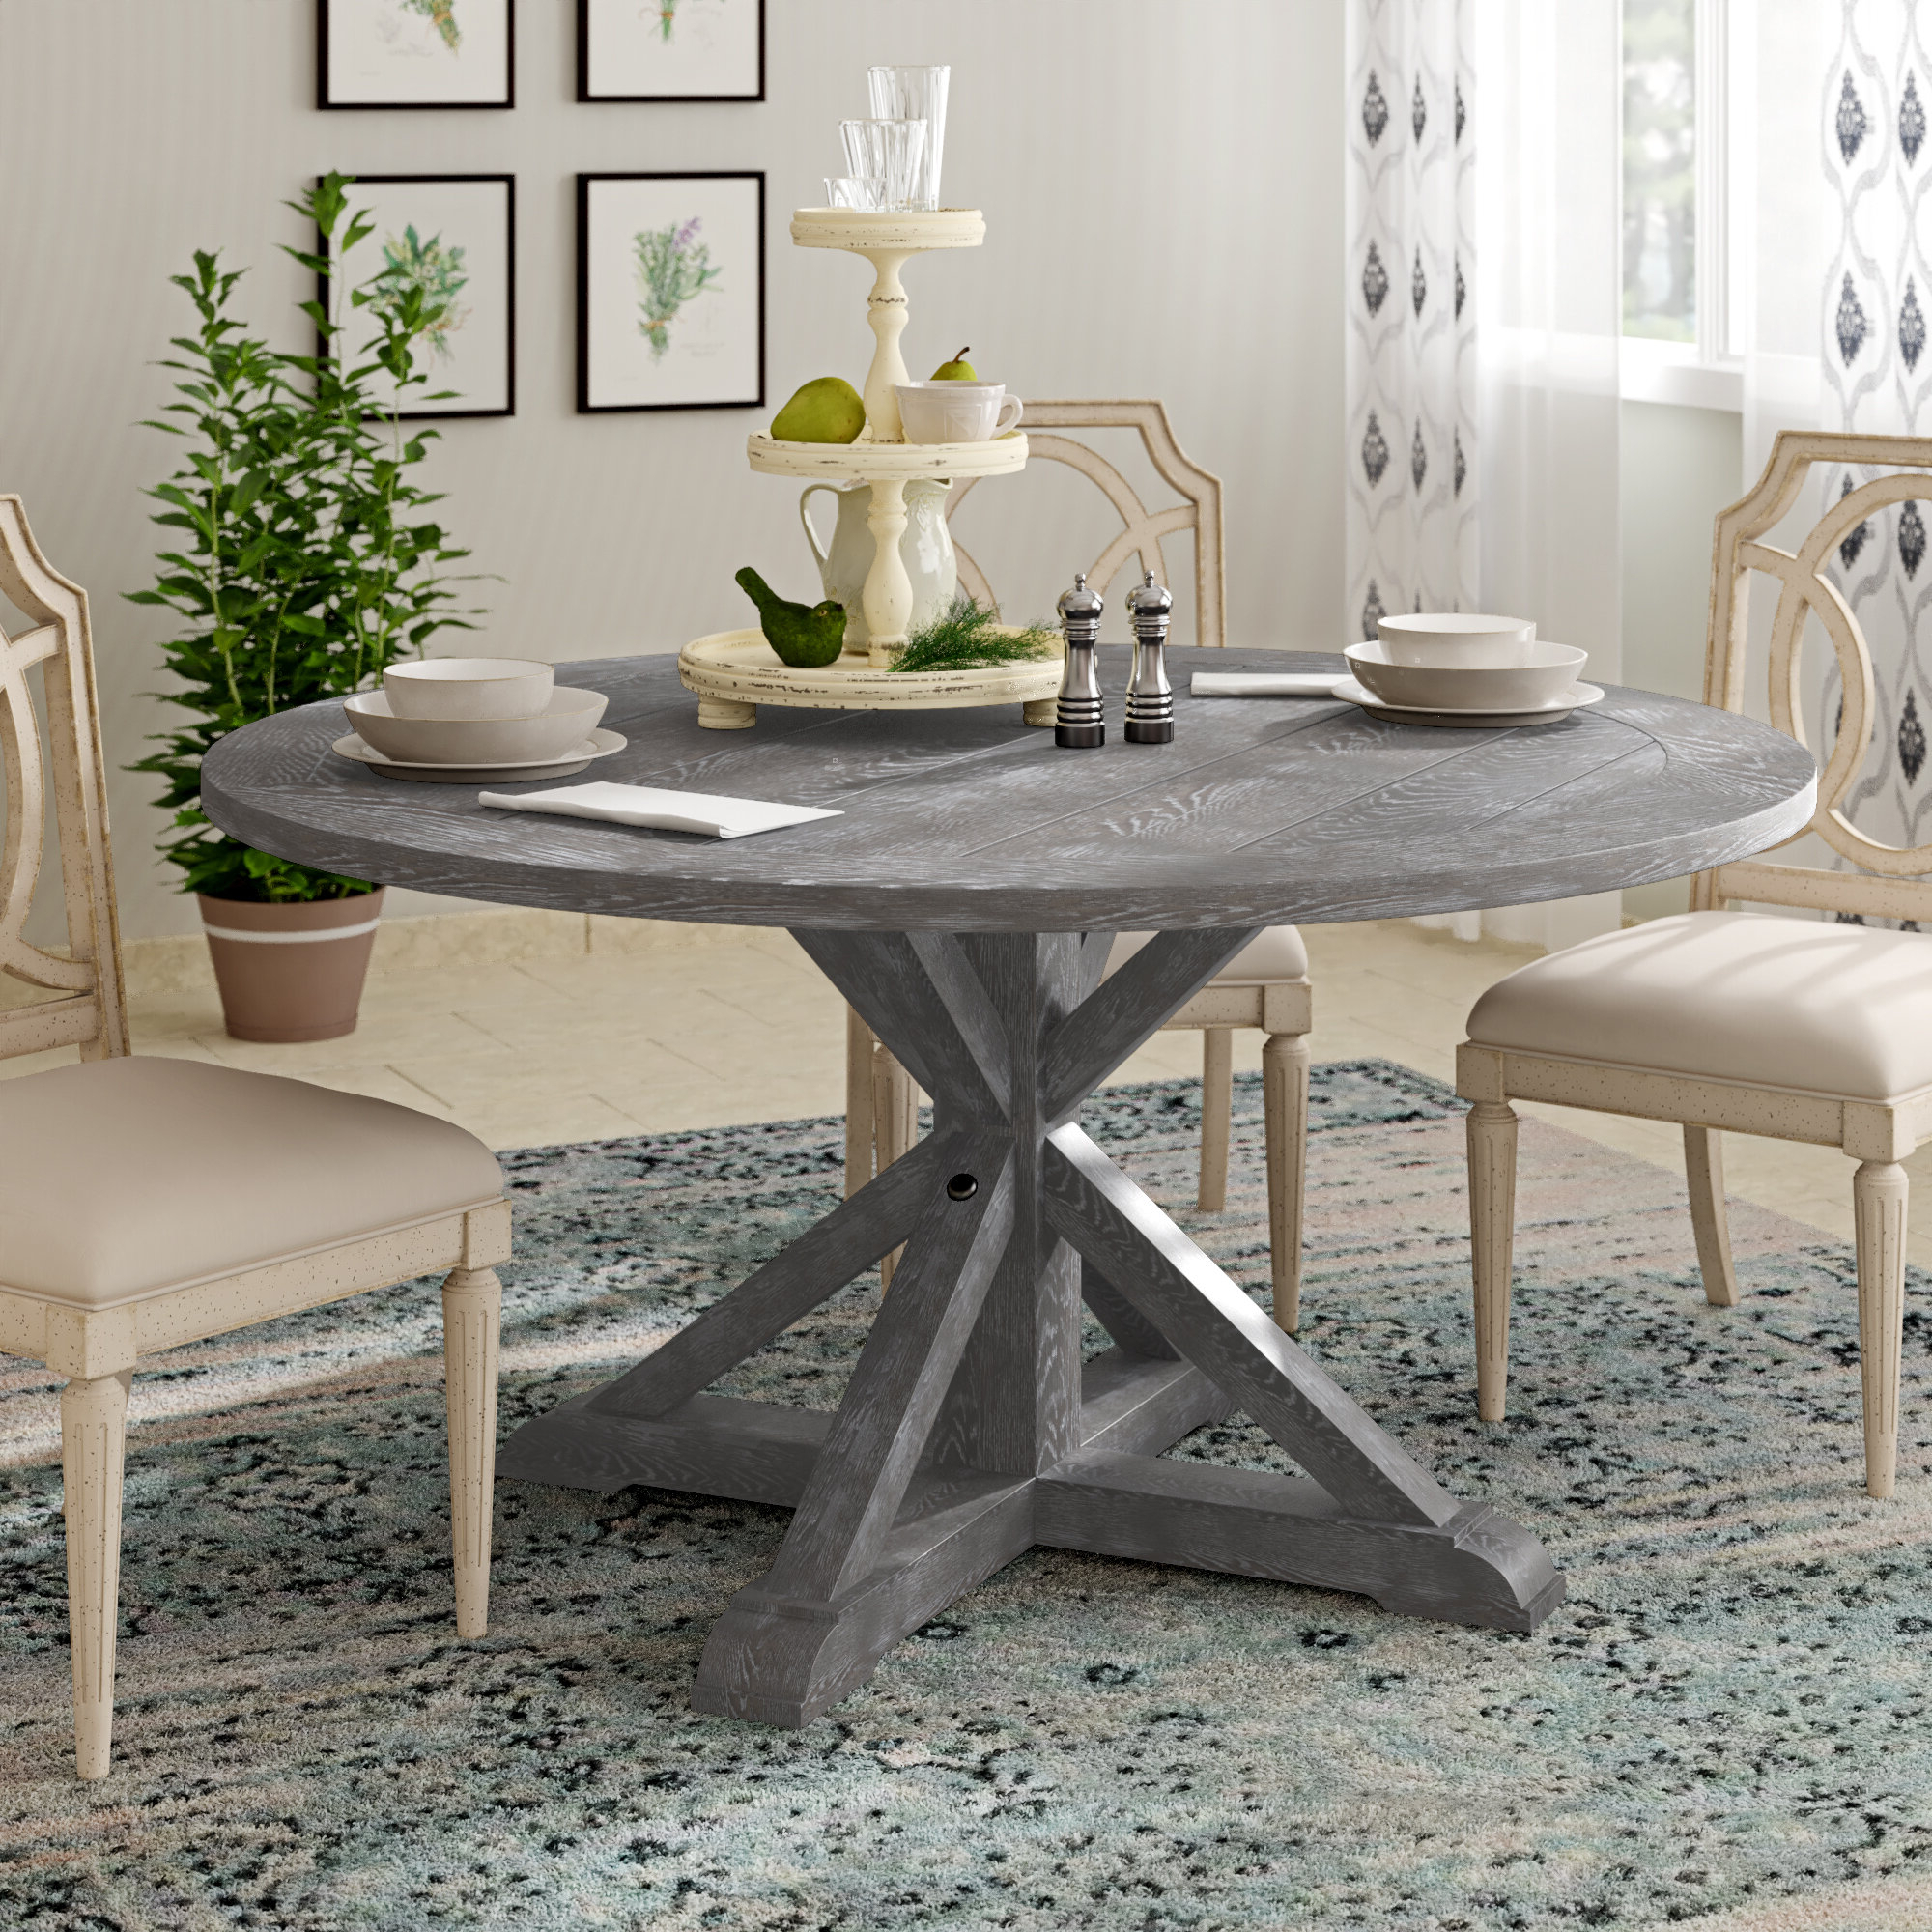 "Charcoal Transitional 6 Seating Rectangular Dining Tables Throughout Favorite Emerald Home Paladin Rustic Charcoal Grey 60"" Round Dining Table With 60"" Top And Farmhouse Trestle Base (View 21 of 30)"